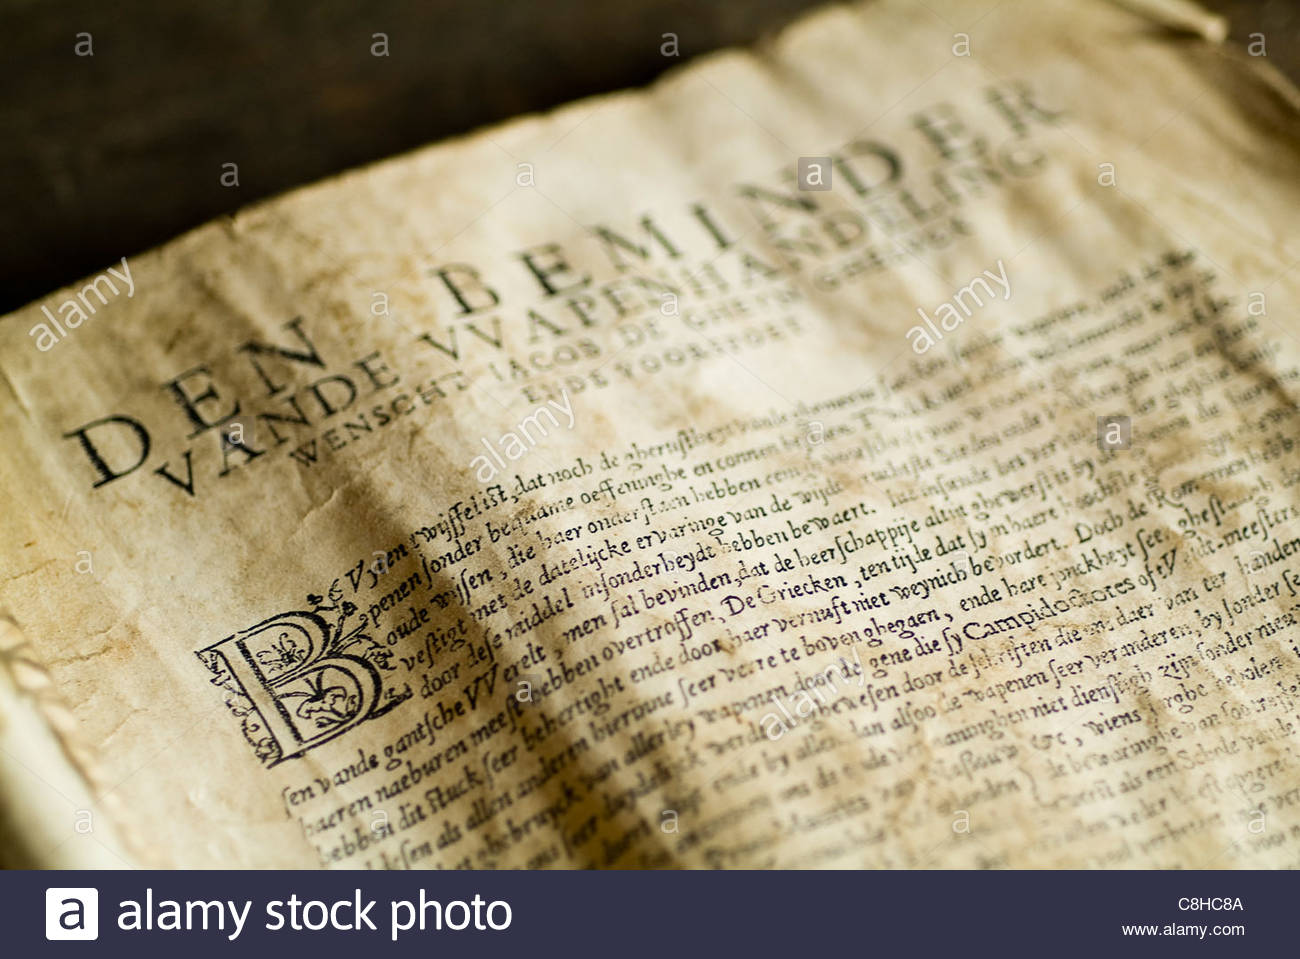 old book on display written in old english - Stock Image